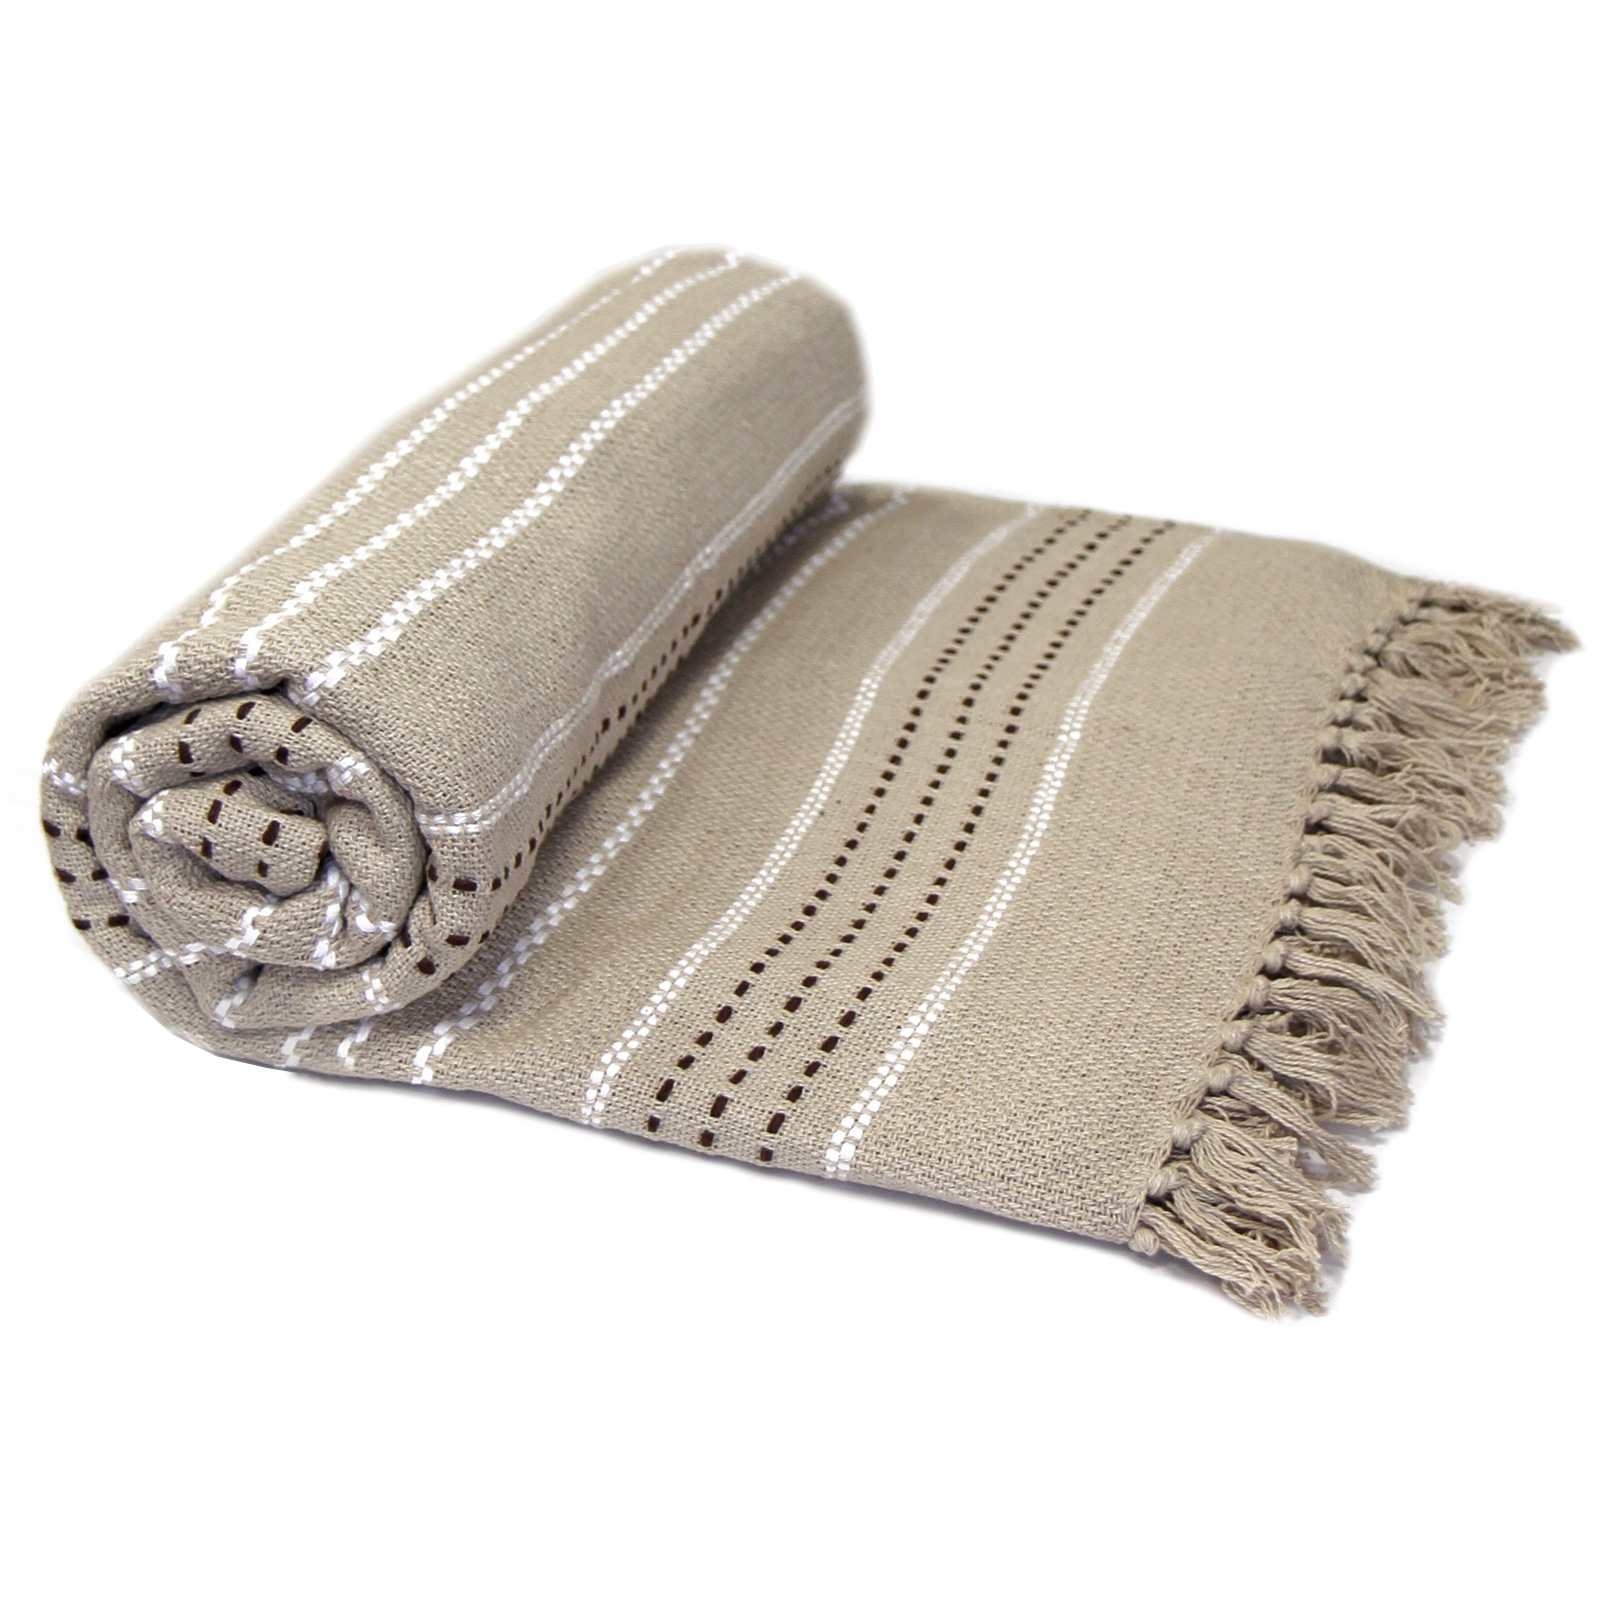 Cotton Throws 100 Cotton Luxury Thermal Woven Throw Over Sofa Bed